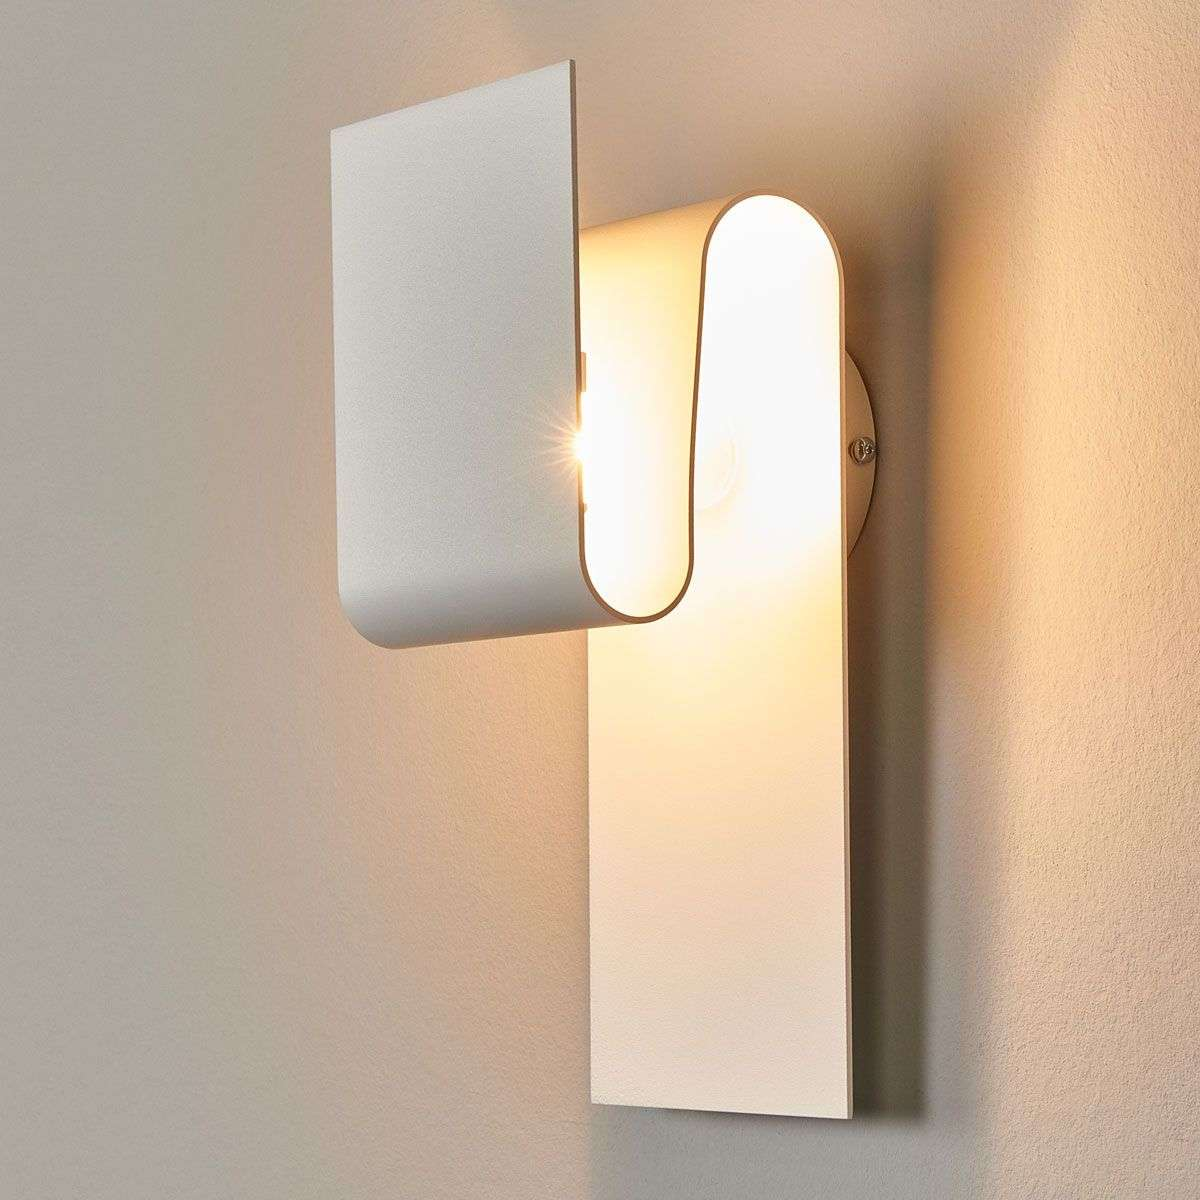 Led Wall Lights Words. Led Outdoor Wall Sconce 8w Led Wall Lamps Waterproof. How To Install Led ...